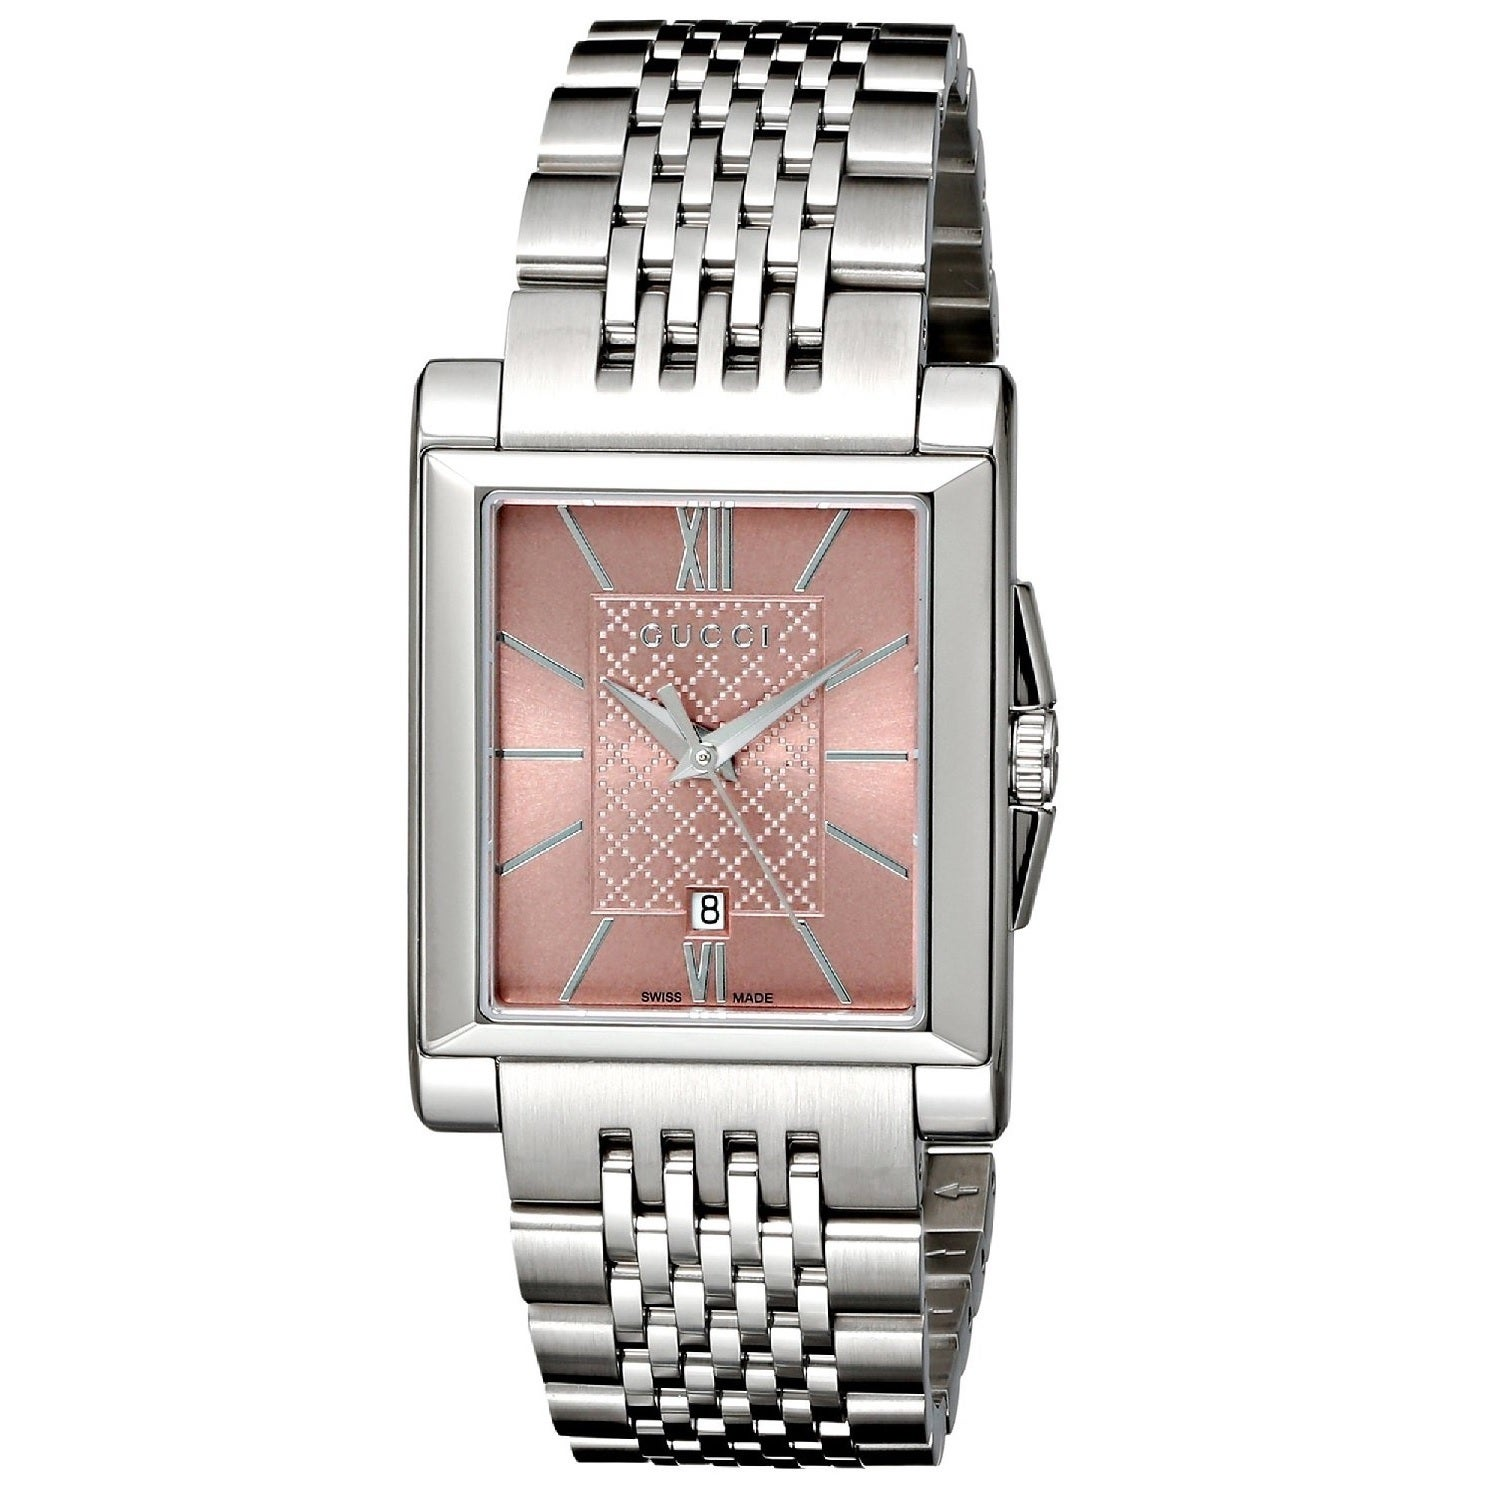 94a82f62815 Shop Gucci Women s YA138502  G-Timeless  Rectangle Swiss Quartz Stainless Steel  Watch - Free Shipping Today - Overstock - 9772566